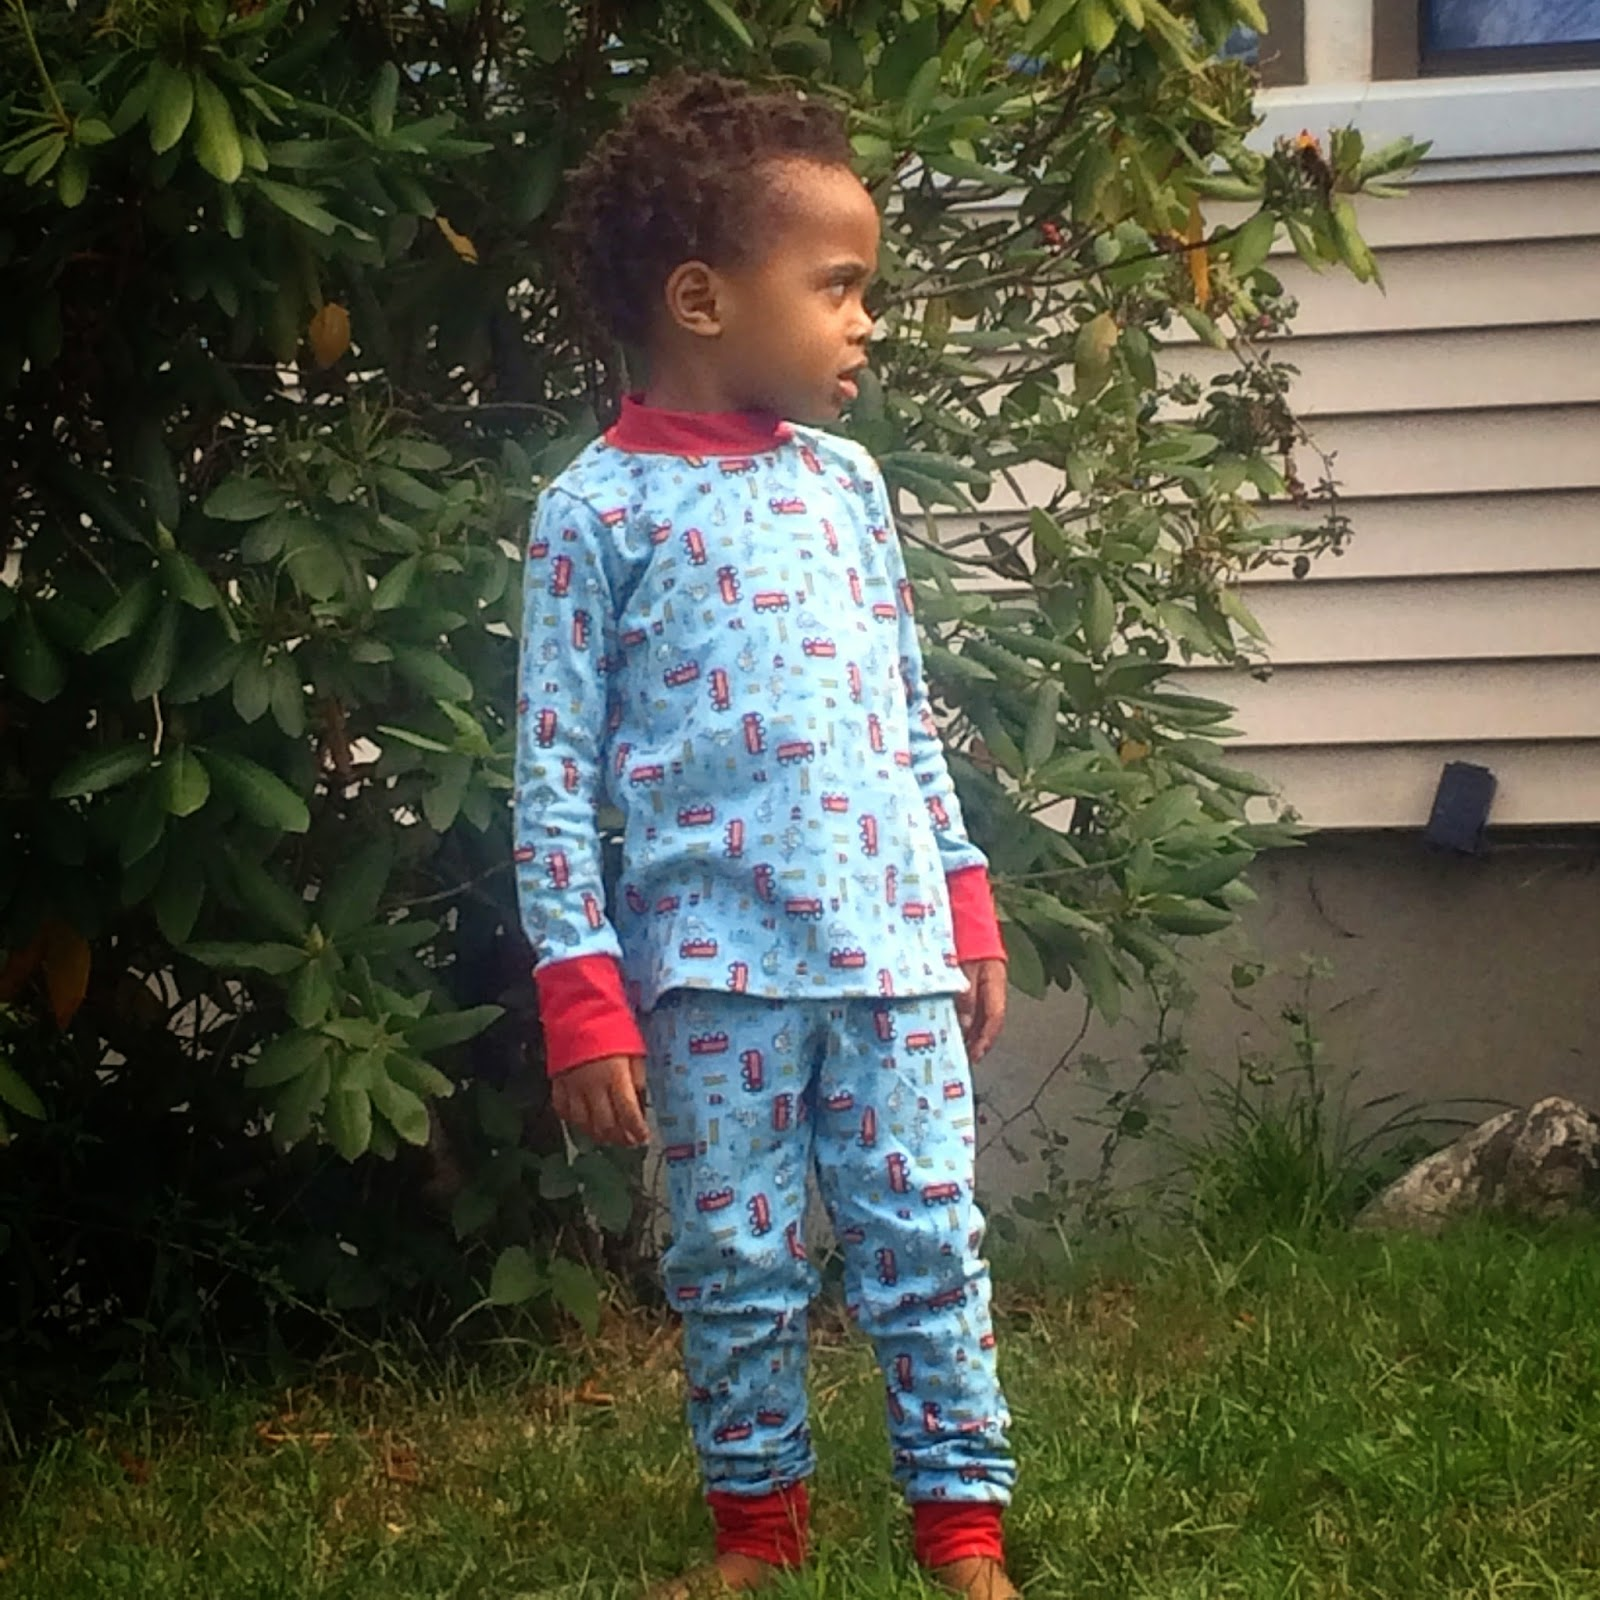 http://twoposhtoddlers.blogspot.ca/2014/09/all-you-need-jammies-pattern-testing.html?m=1